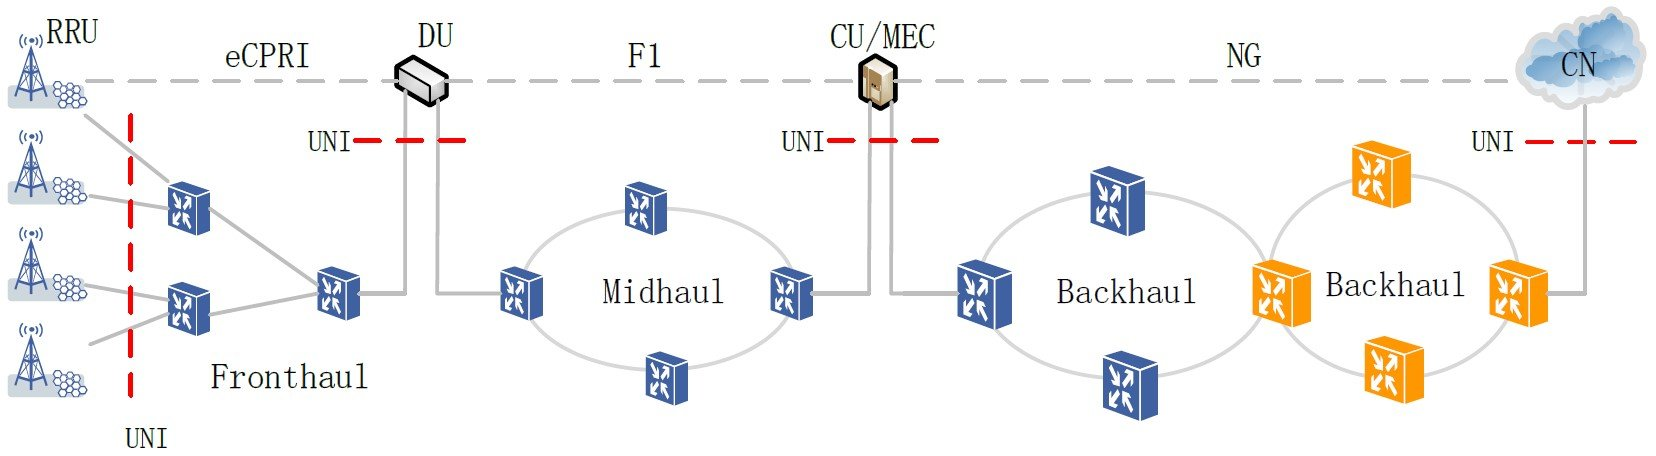 A transport network architecture for Independent CU and DU deployment